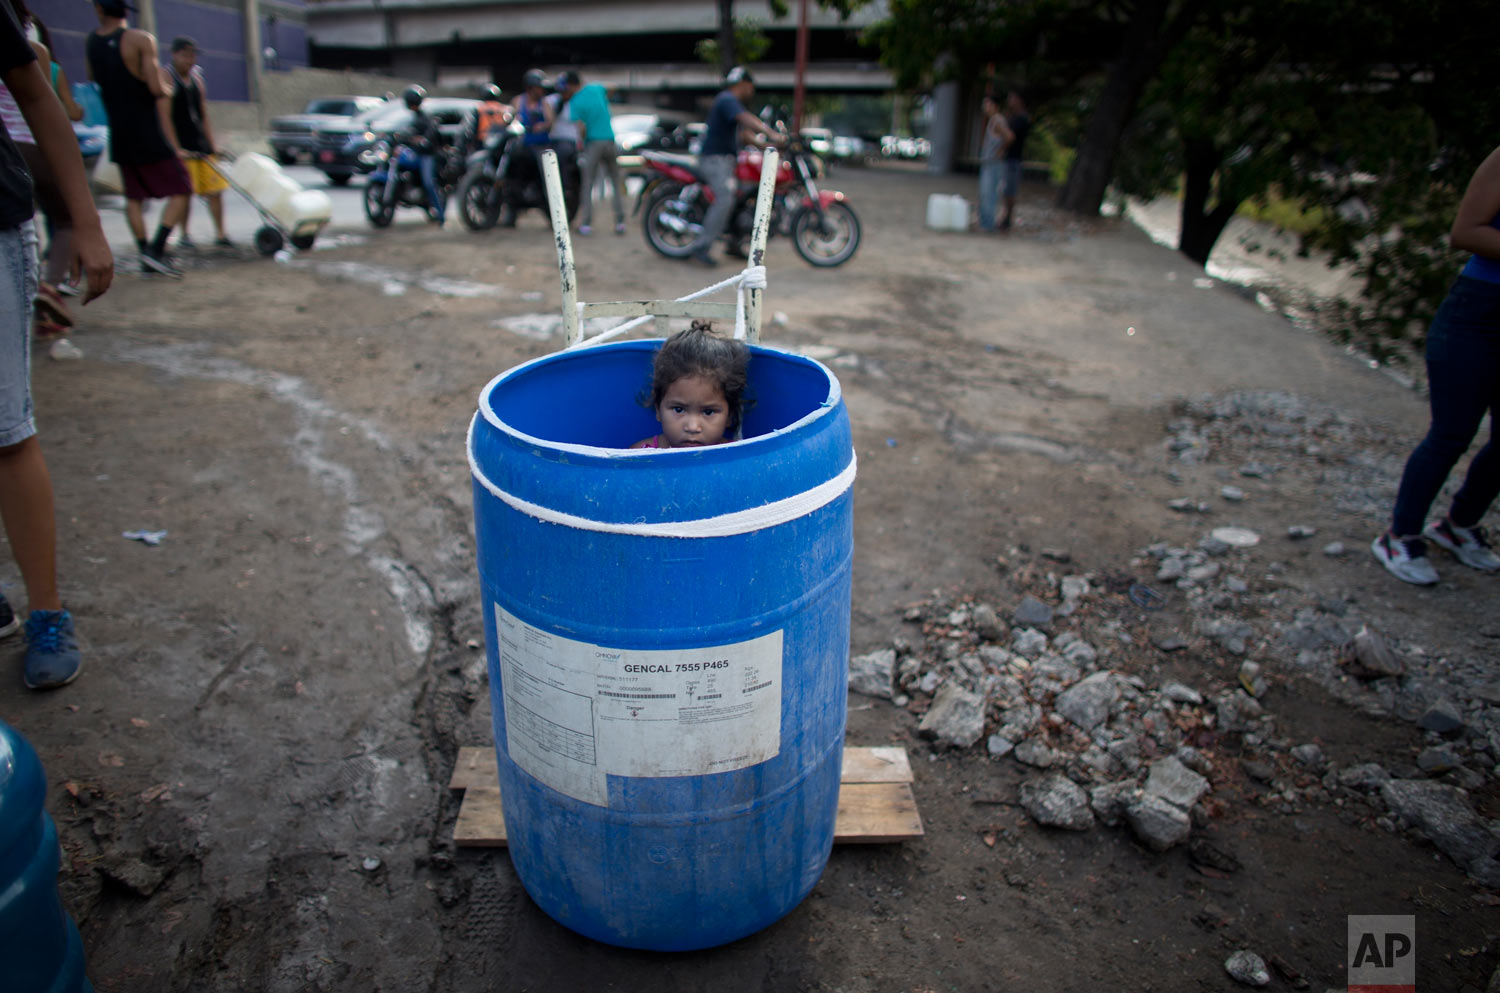 In this March 11, 2019 photo, a little girl stands inside a plastic barrel while her family waits to collect water from an open pipe above the Guaire River, during rolling blackouts which affect the water pumps in people's homes, offices and stores, in Caracas, Venezuela. (AP Photo/Ariana Cubillos)